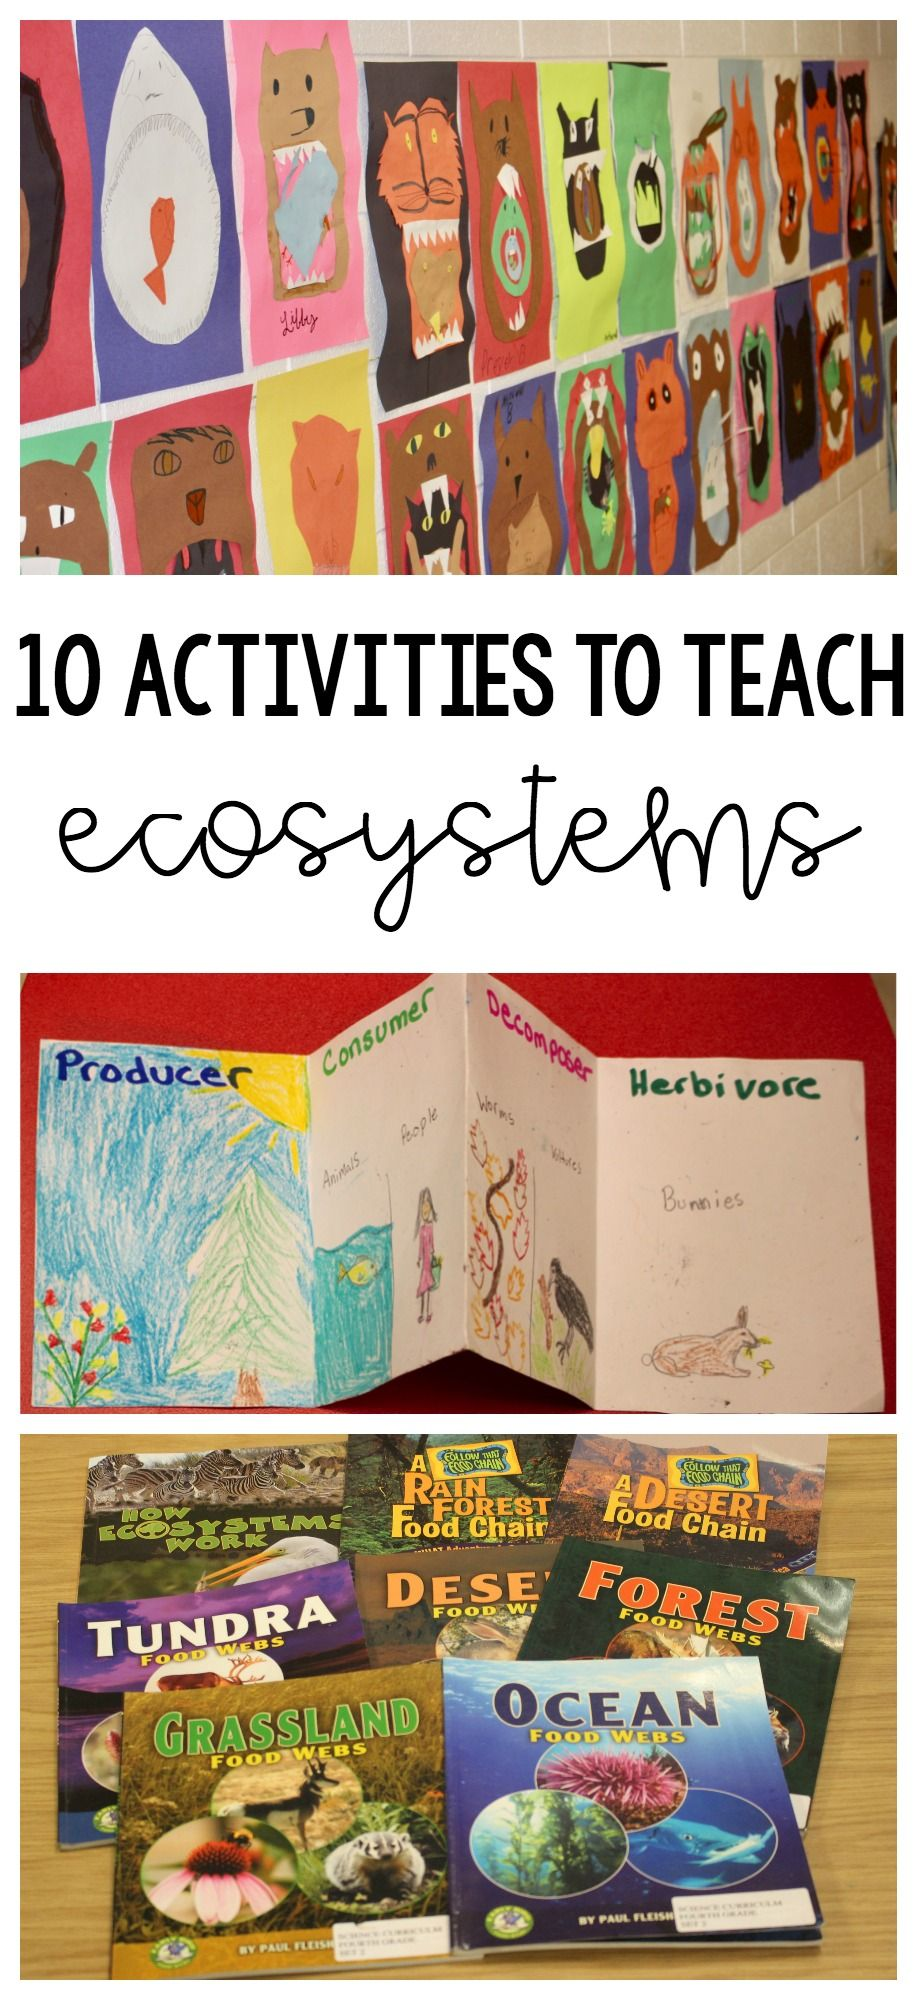 10 Activities to Teach Ecosystems | Science Resources and Ideas